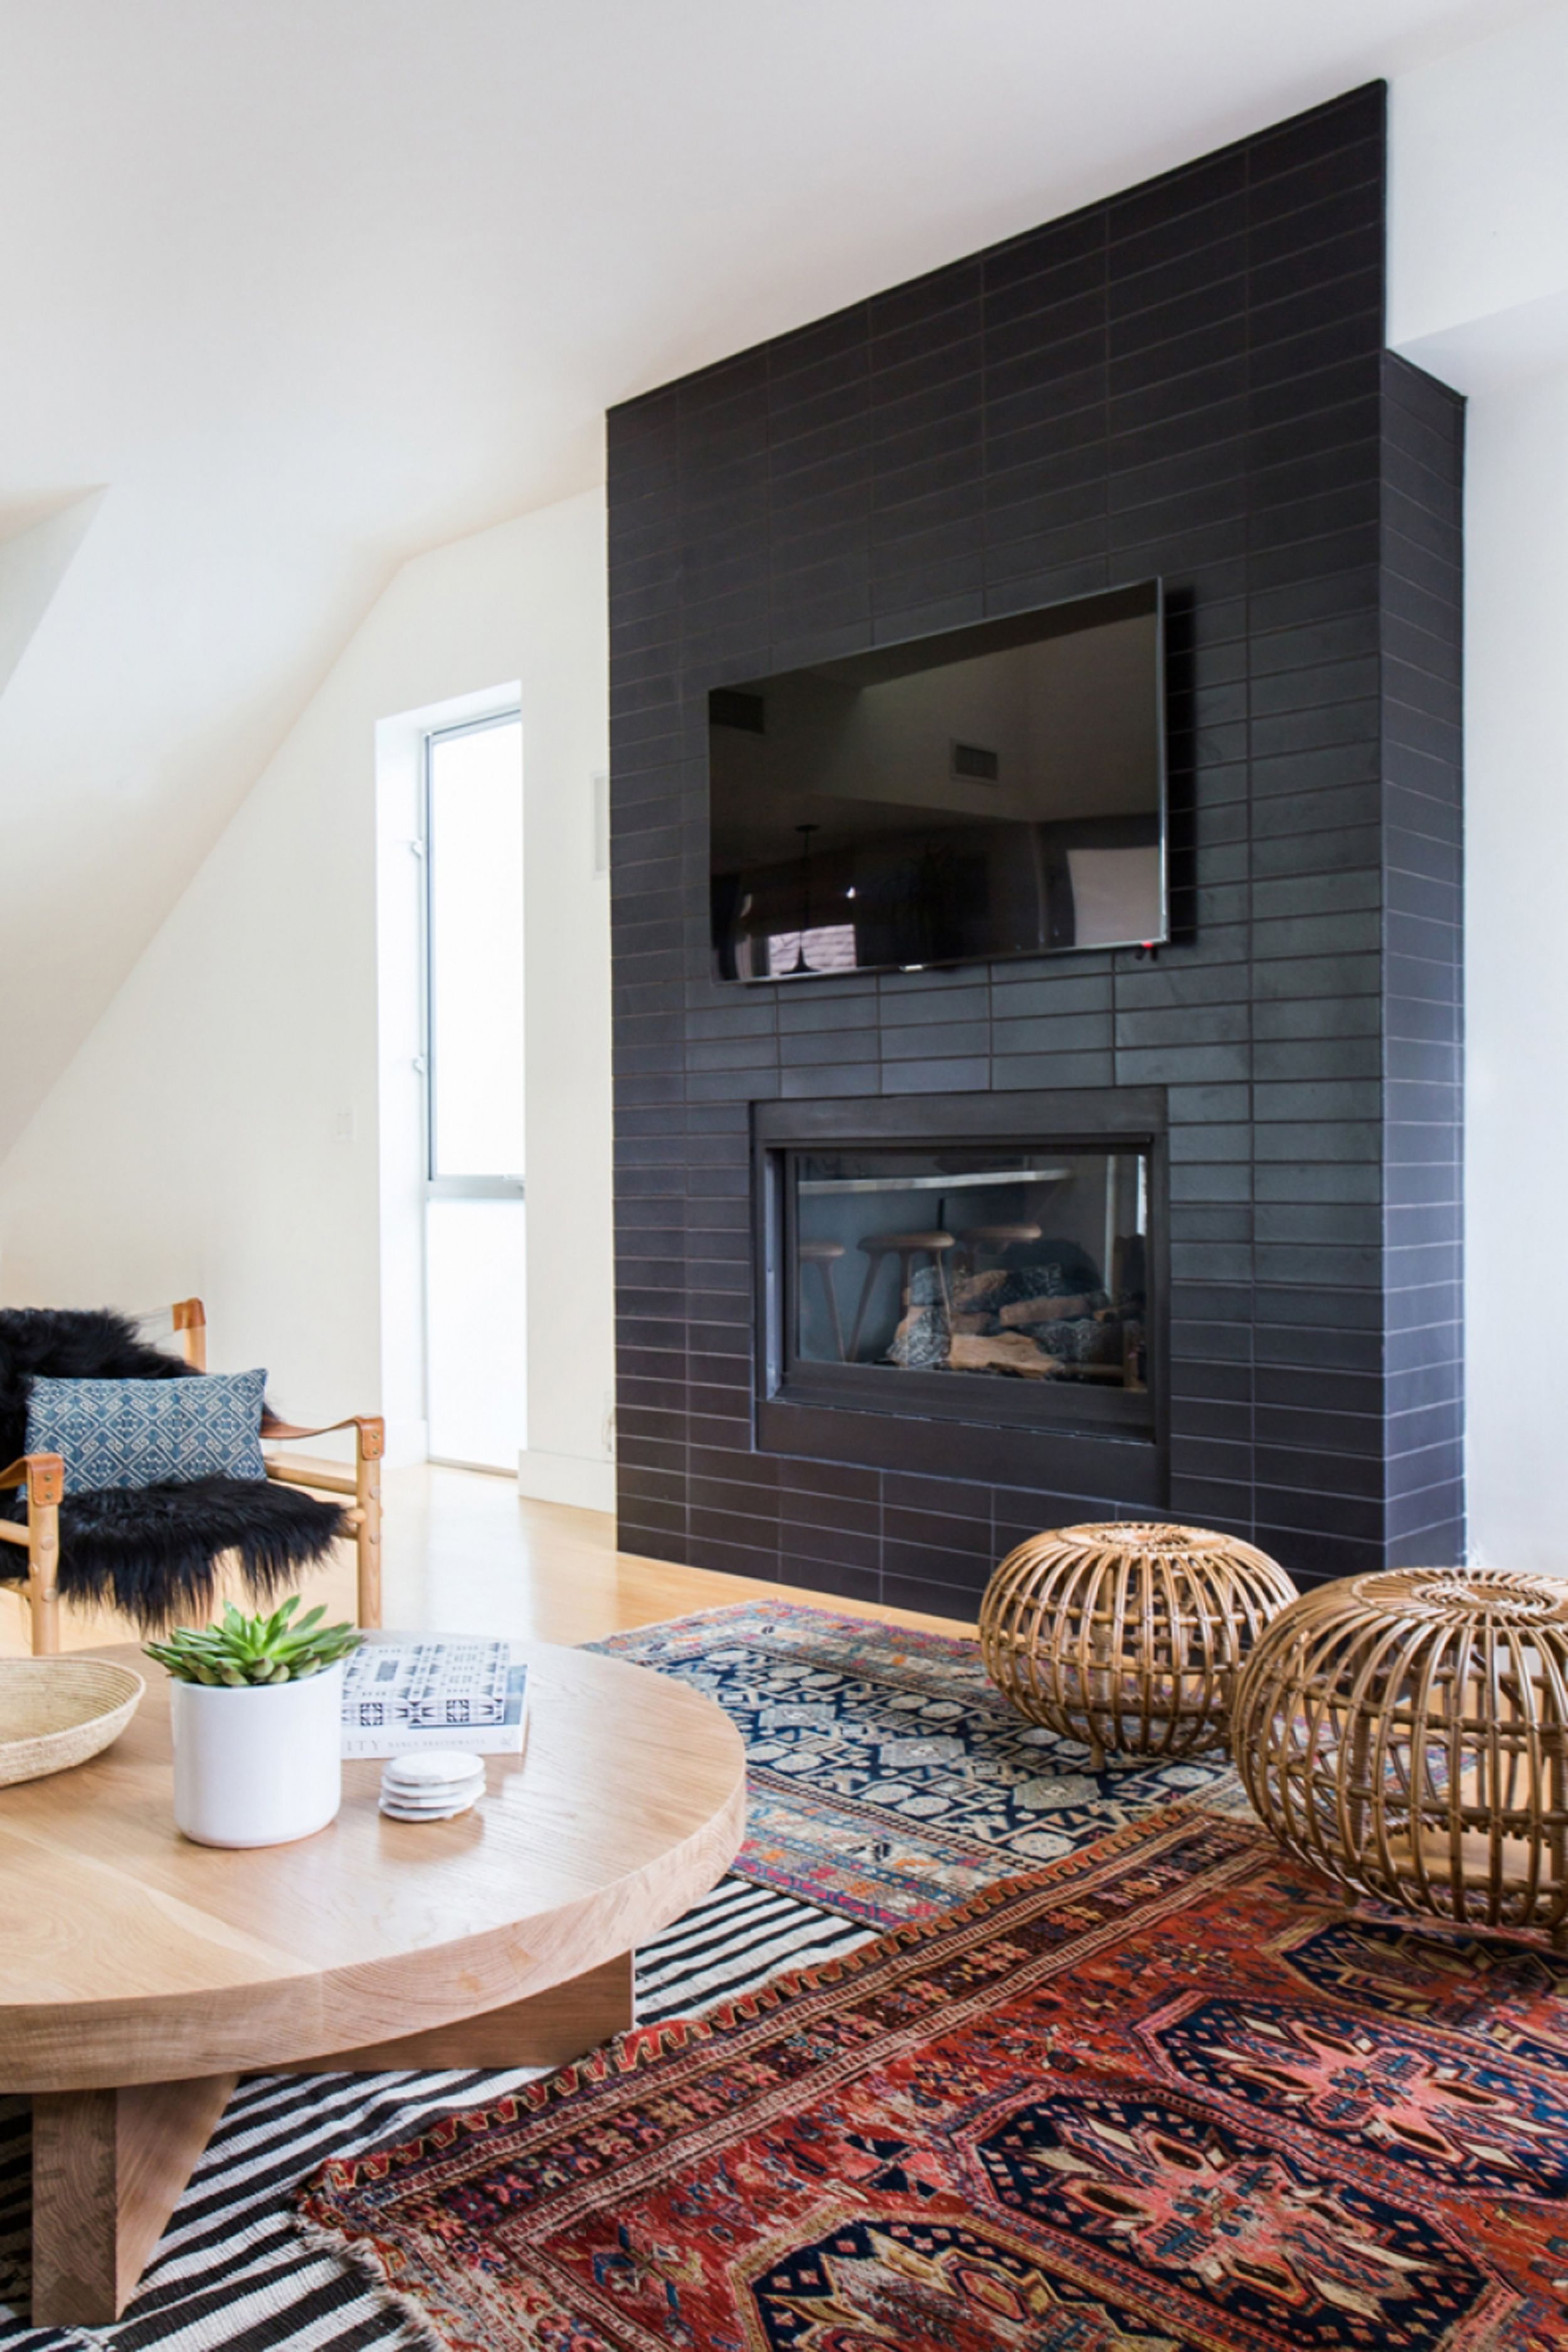 Ehd amber lewis hides her tv on black tile wall above her fireplace